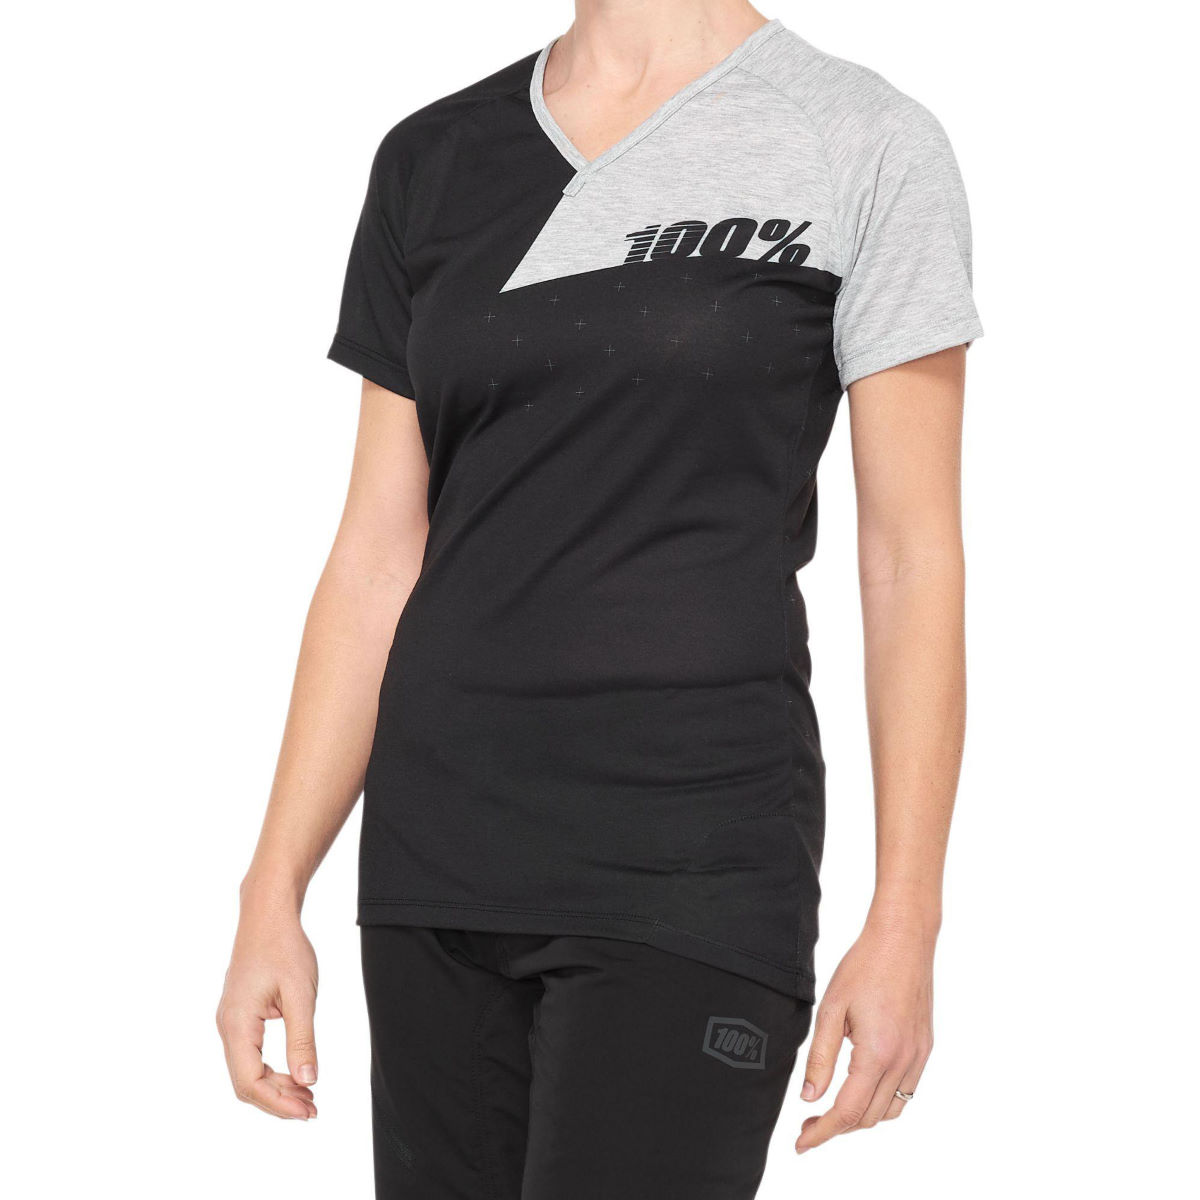 100% Womens Airmatic Jersey - Xl Black/grey  Jerseys